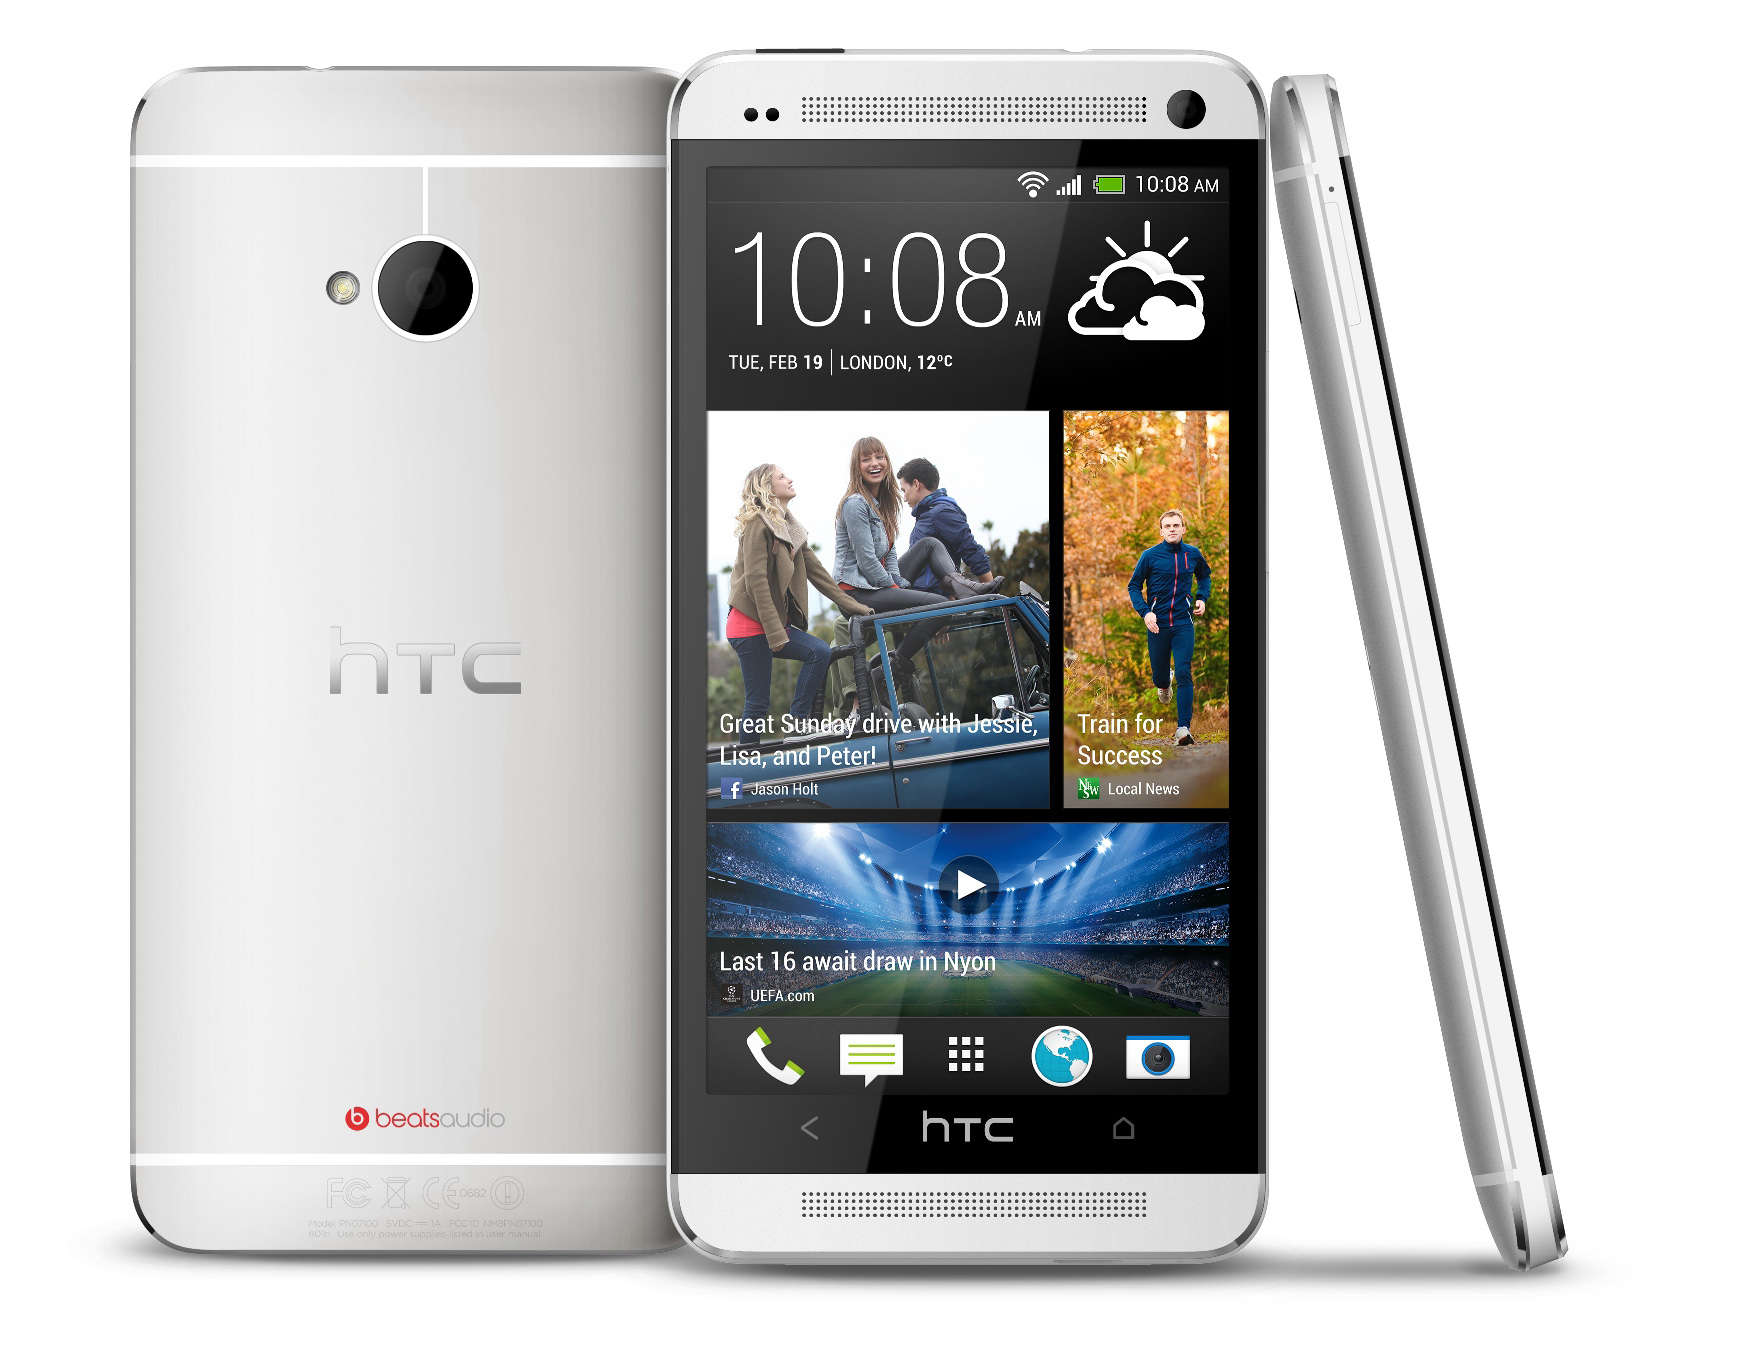 HTC Begins rolling out Android Lollipop 5.0 update for Selected HTC One M7 users. 1